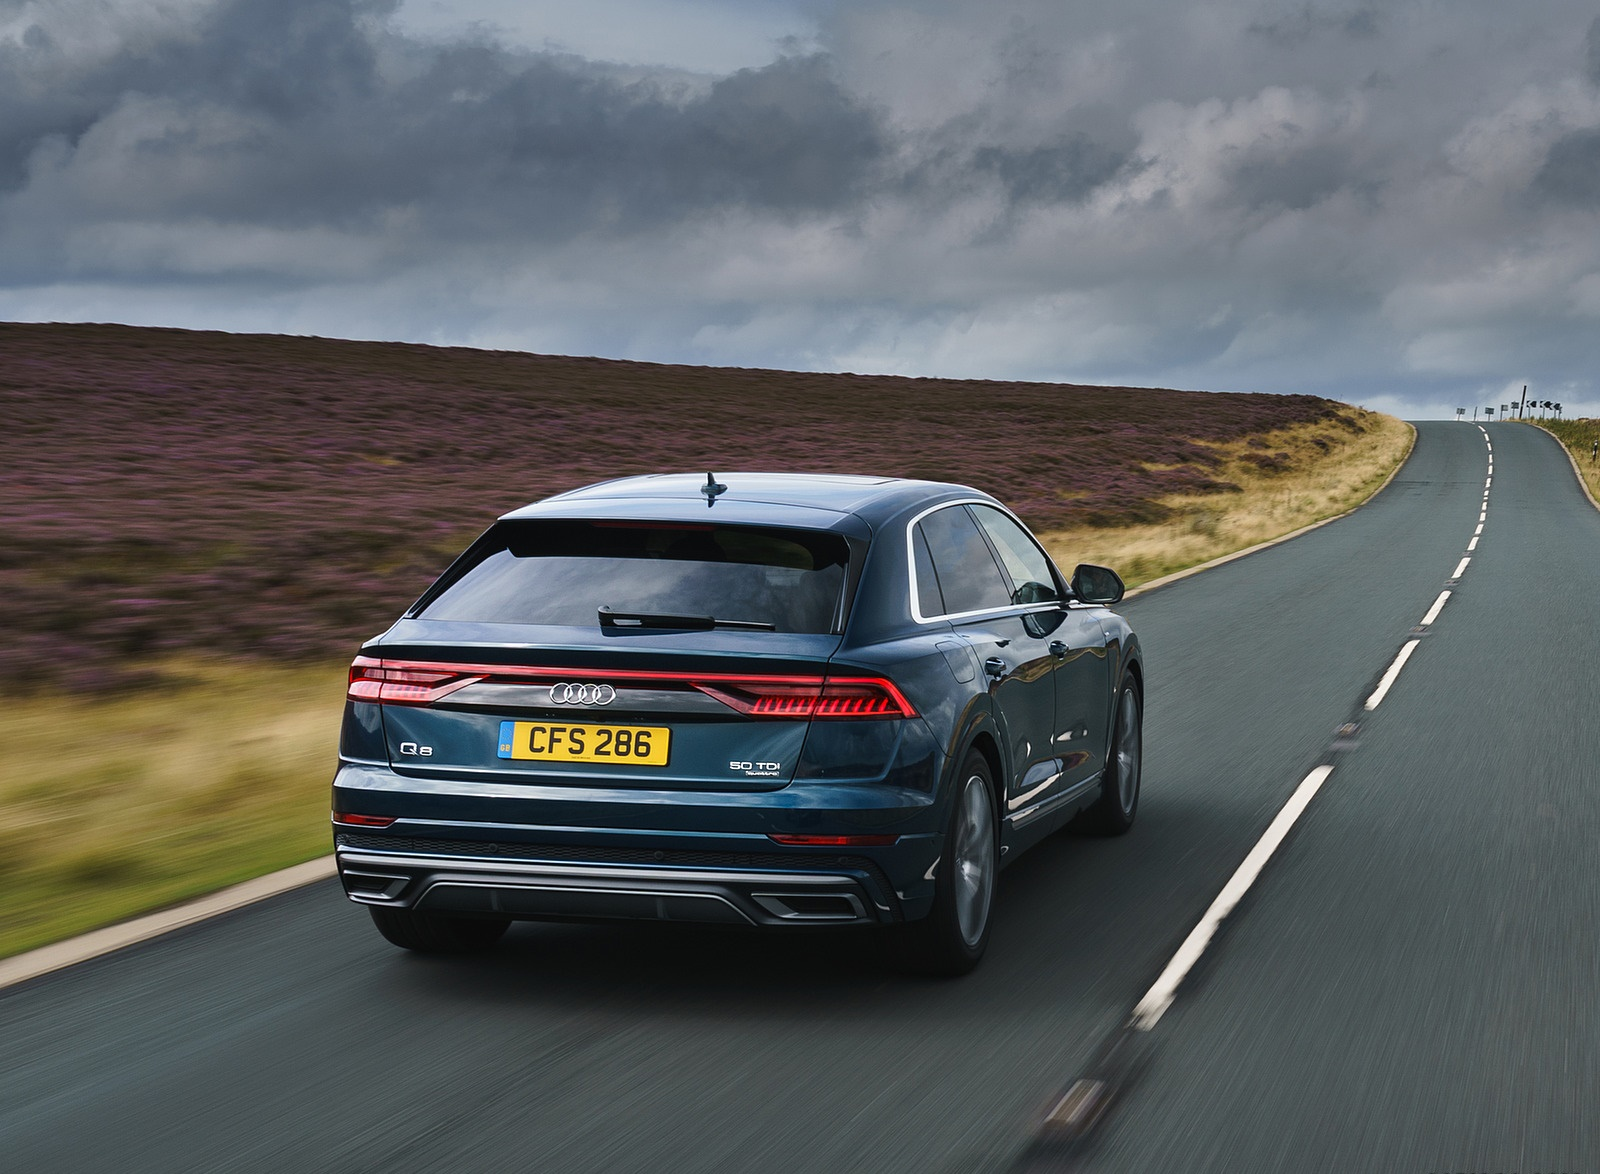 2019 Audi Q8 S Line 50 TDI Quattro (UK-Spec) Rear Wallpaper (7)